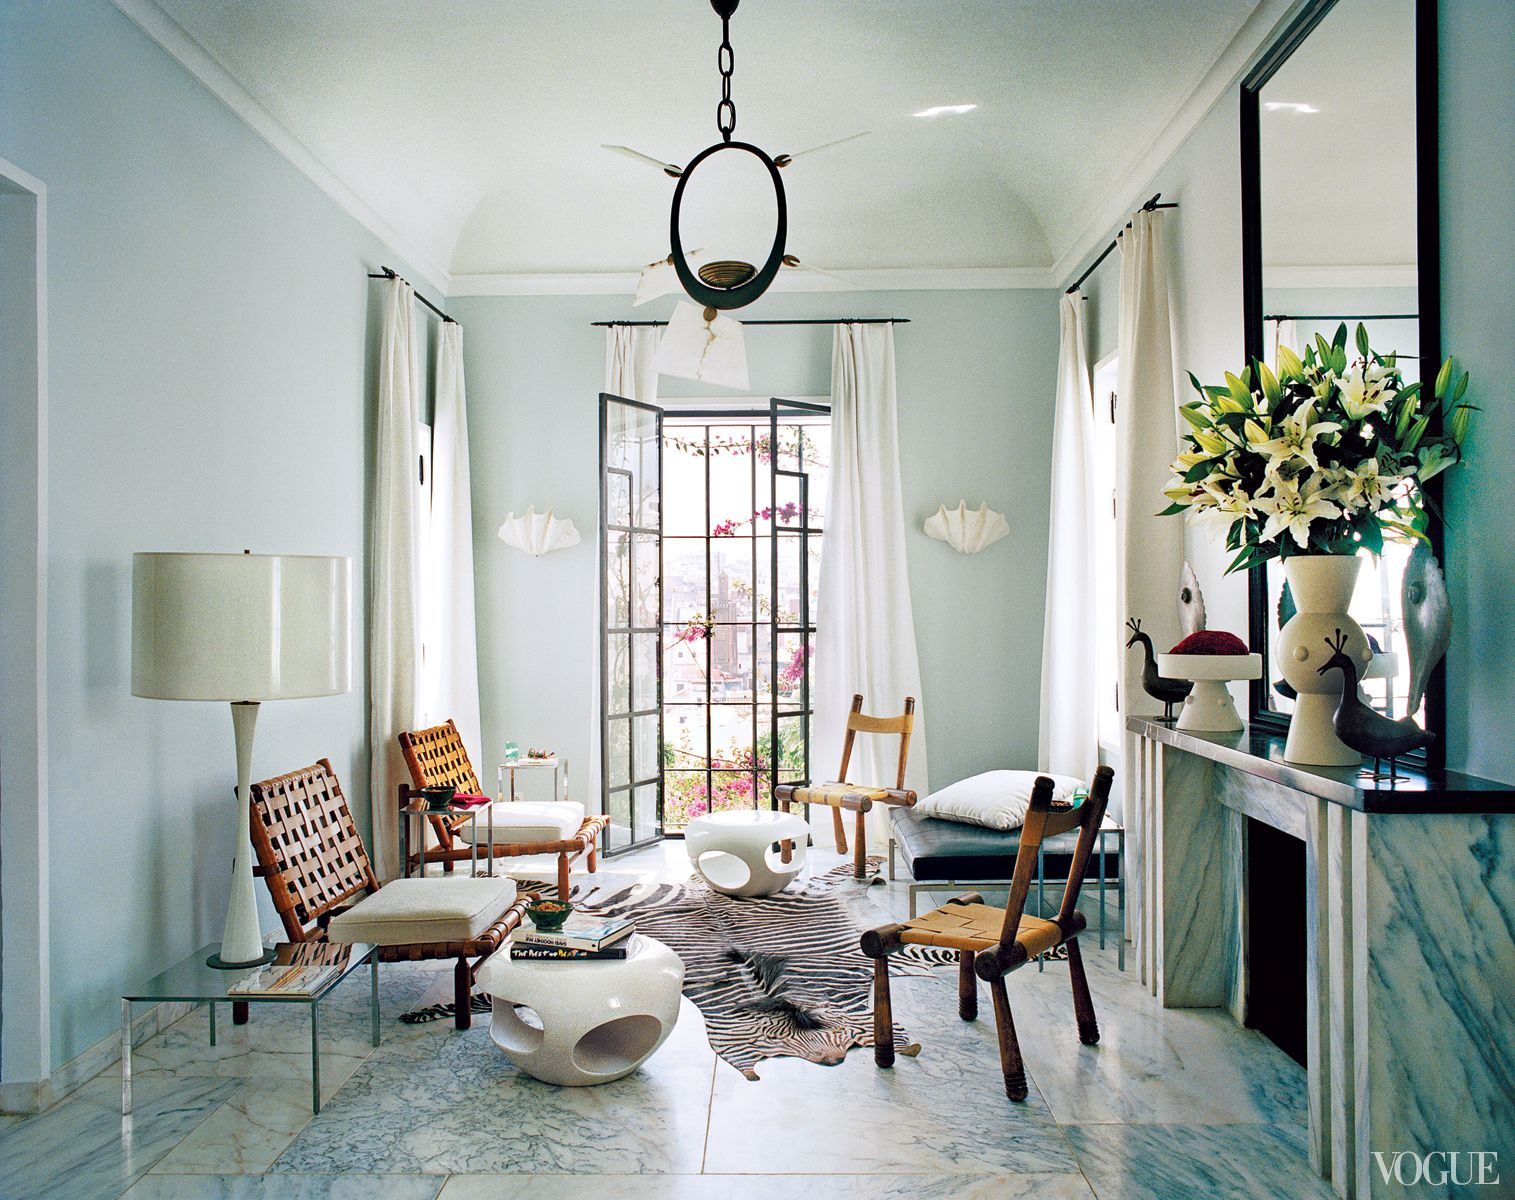 Modern moroccan home decor - Find This Pin And More On Homes And Interiors Moroccan